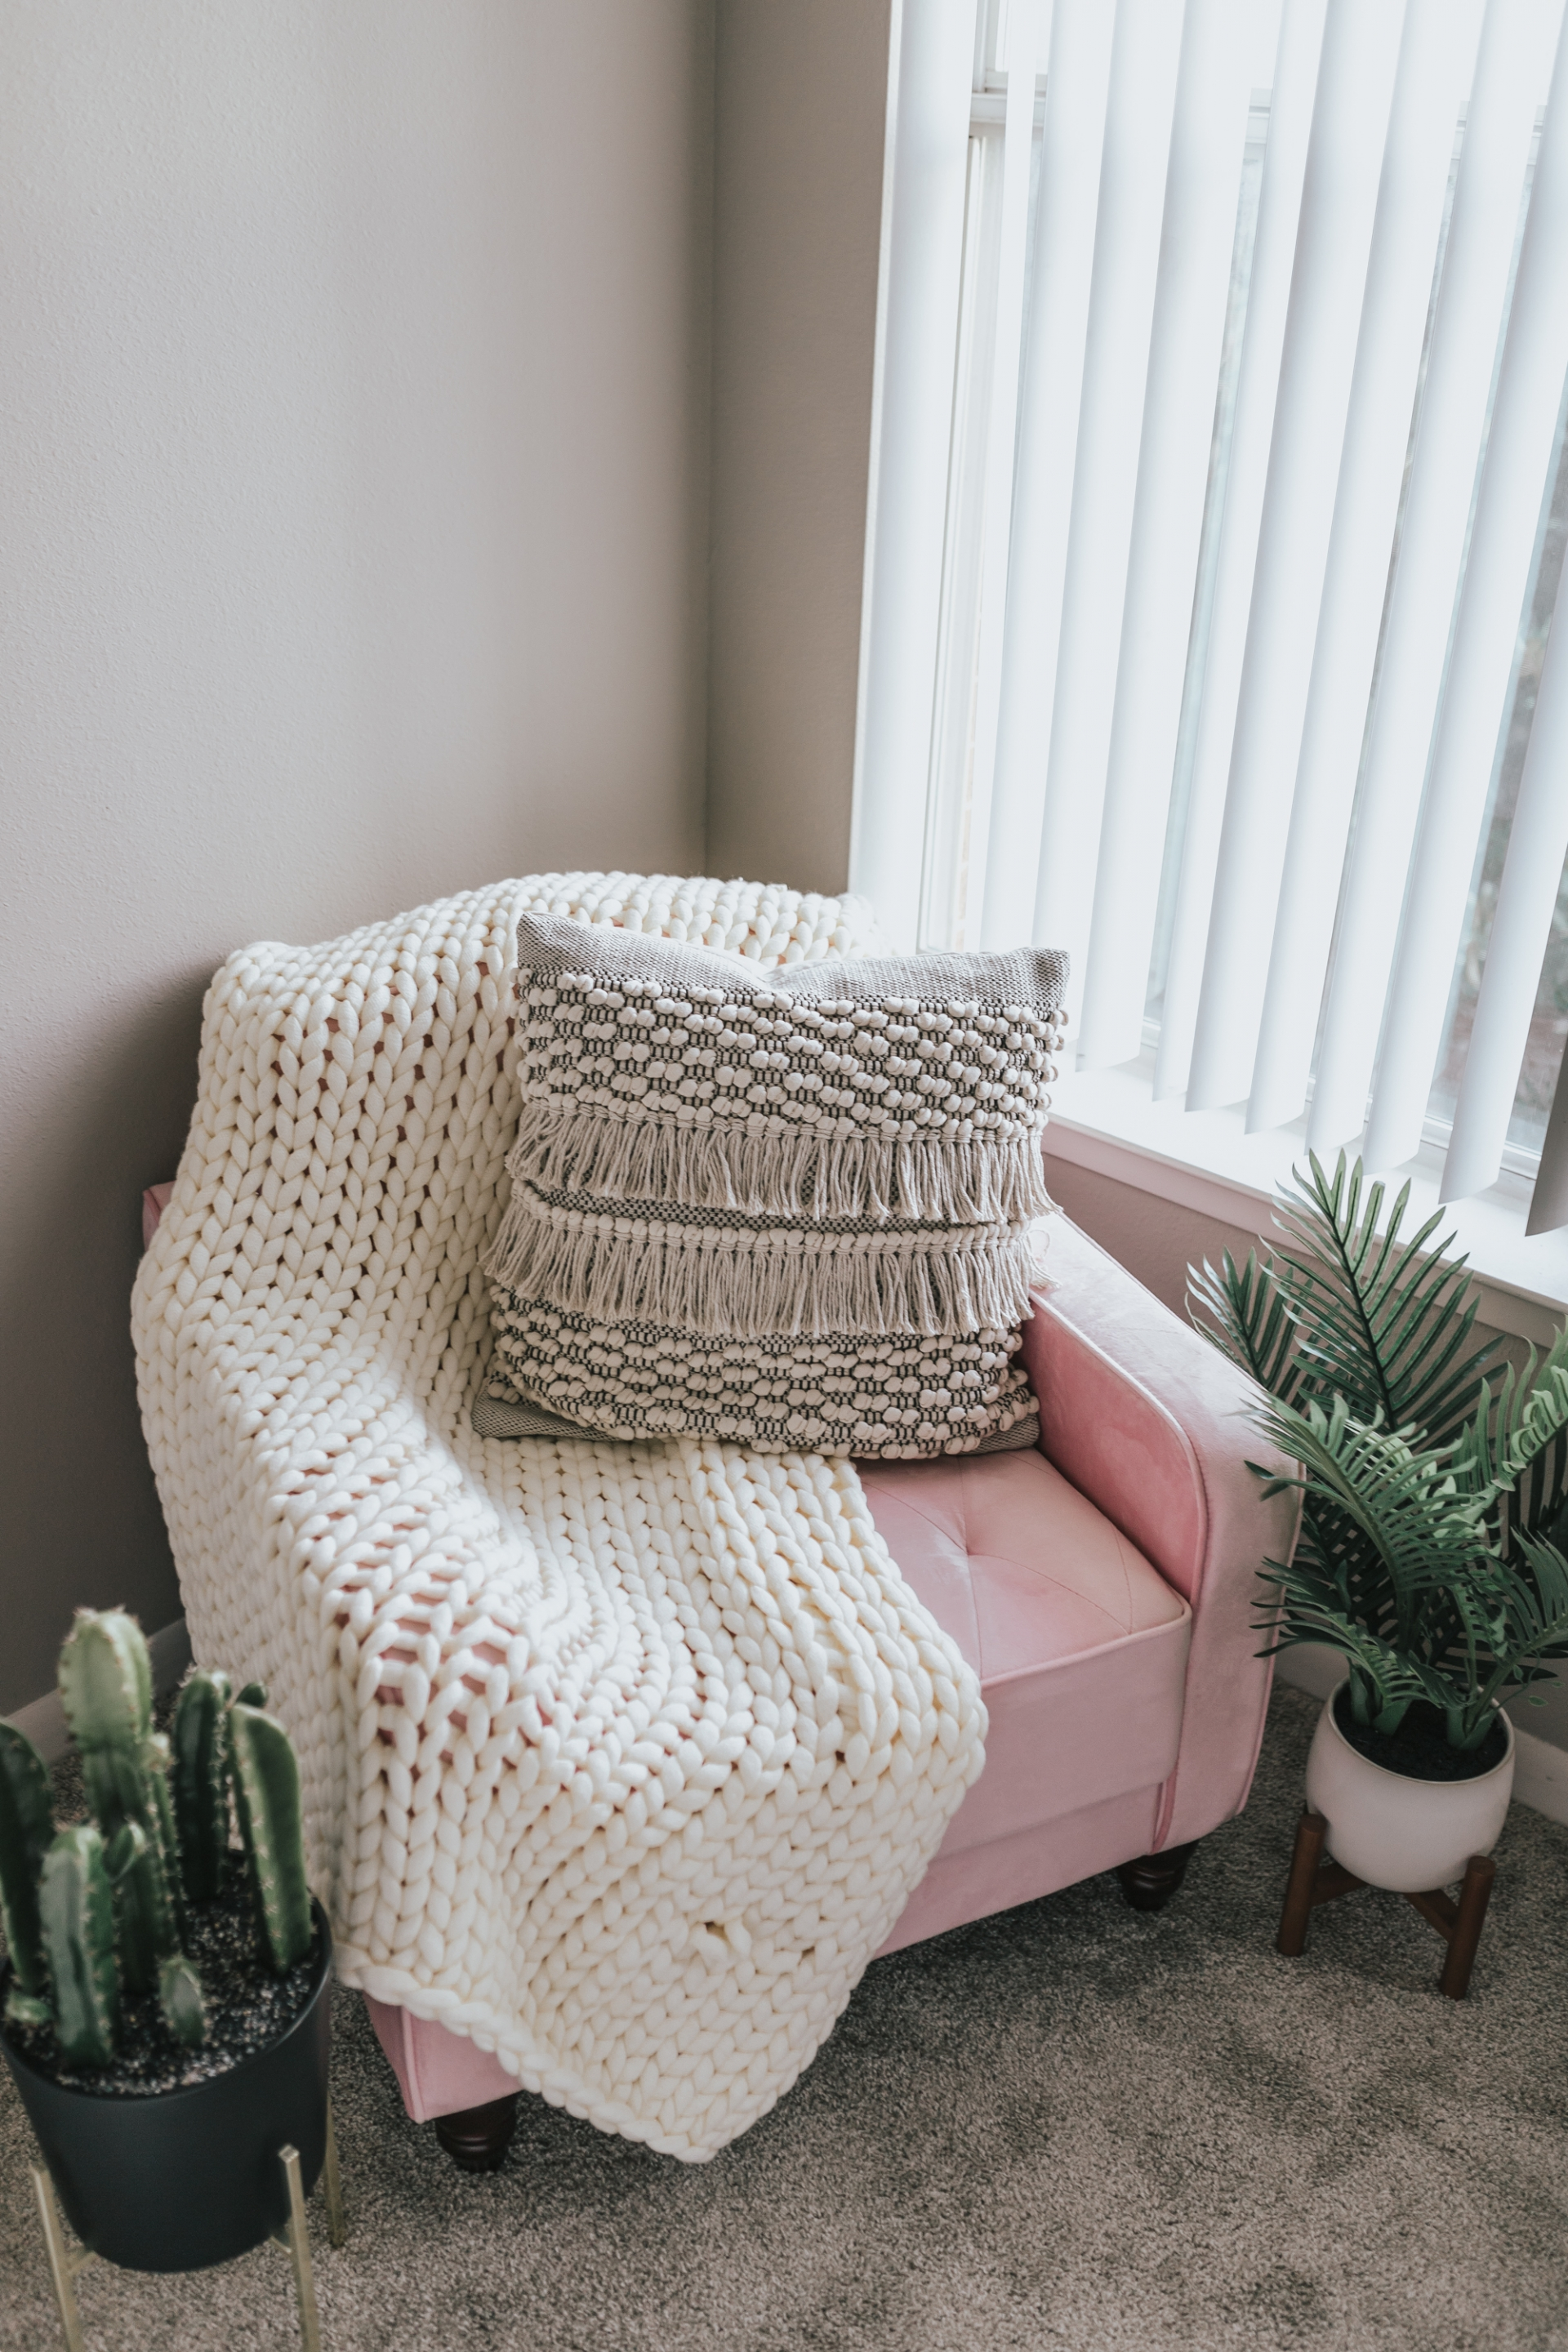 Pink Accent Chair Novogratz Vintage Tufted Accent Chair DHP Furniture Walmart Pink Couch Pink Ottoman Home Goods TJ Maxi Chunky Knit Throw Blanket Throw Pillow Fringe Pom Pom Wayfair Faux Palm Tree World Market Faux Cactus Pottery Barn Pot Planter Stand Home Decor Blogger